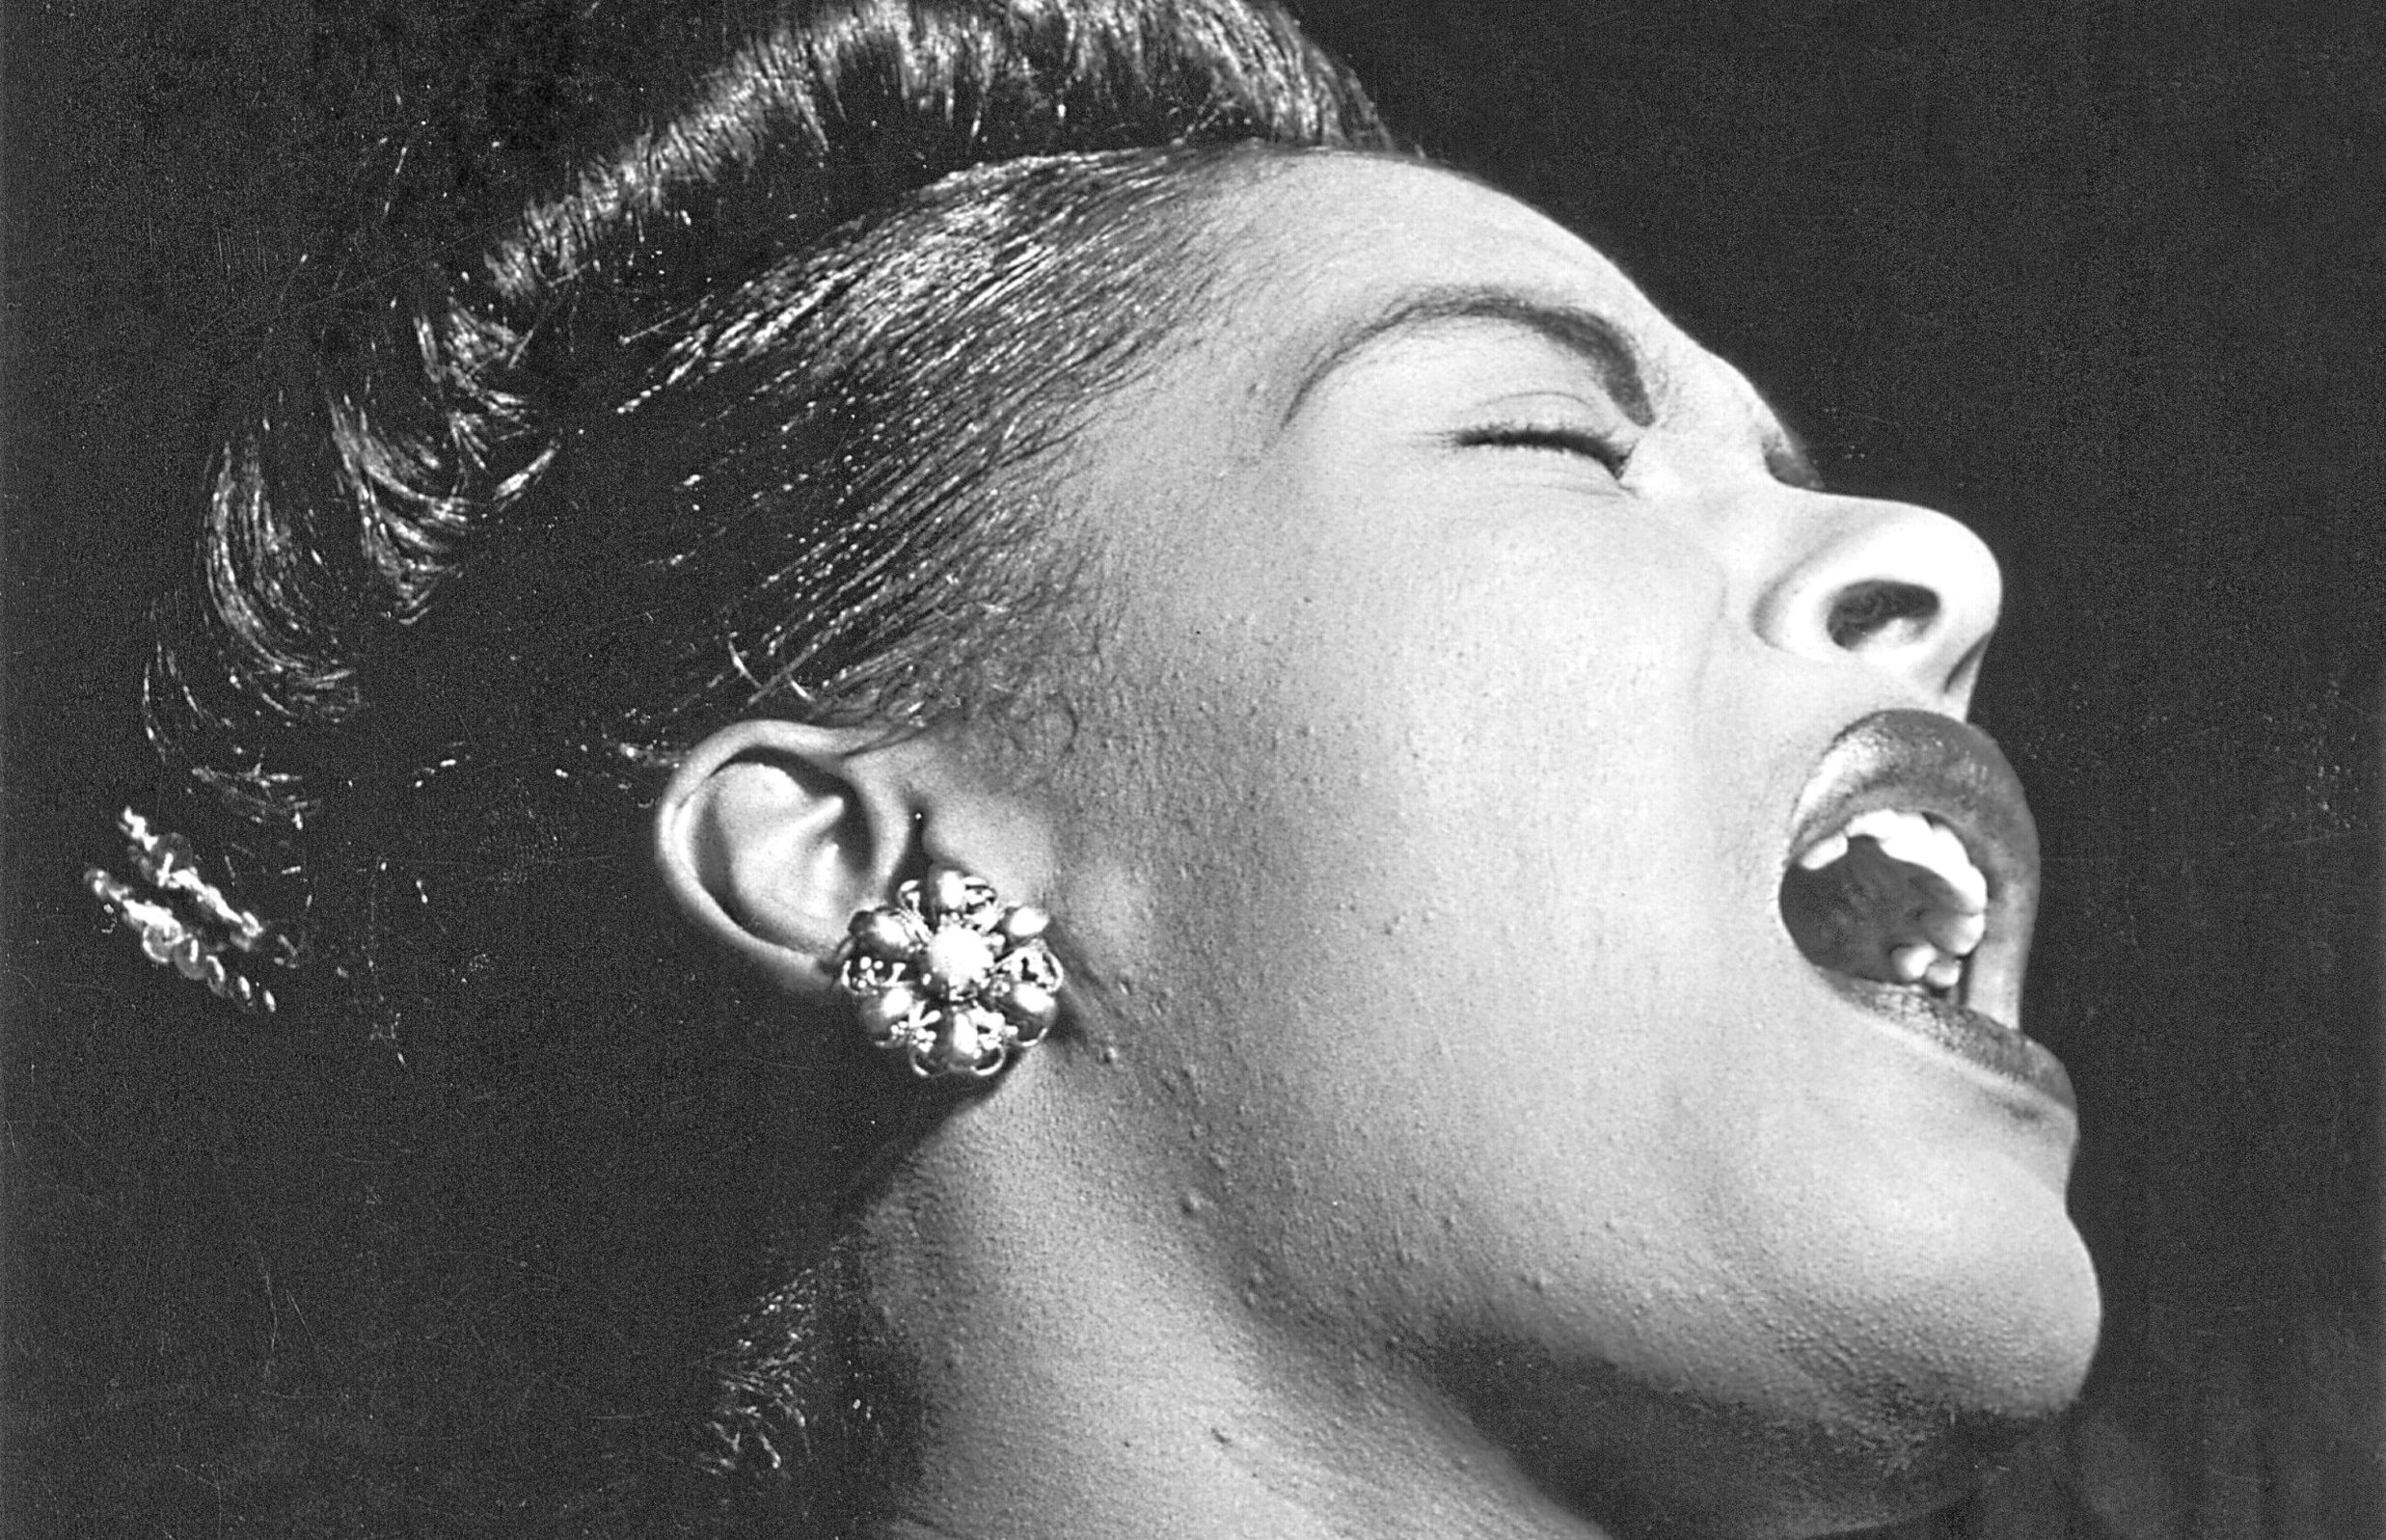 Billie Holiday performing at the Club Downbeat in Manhattan, 1947